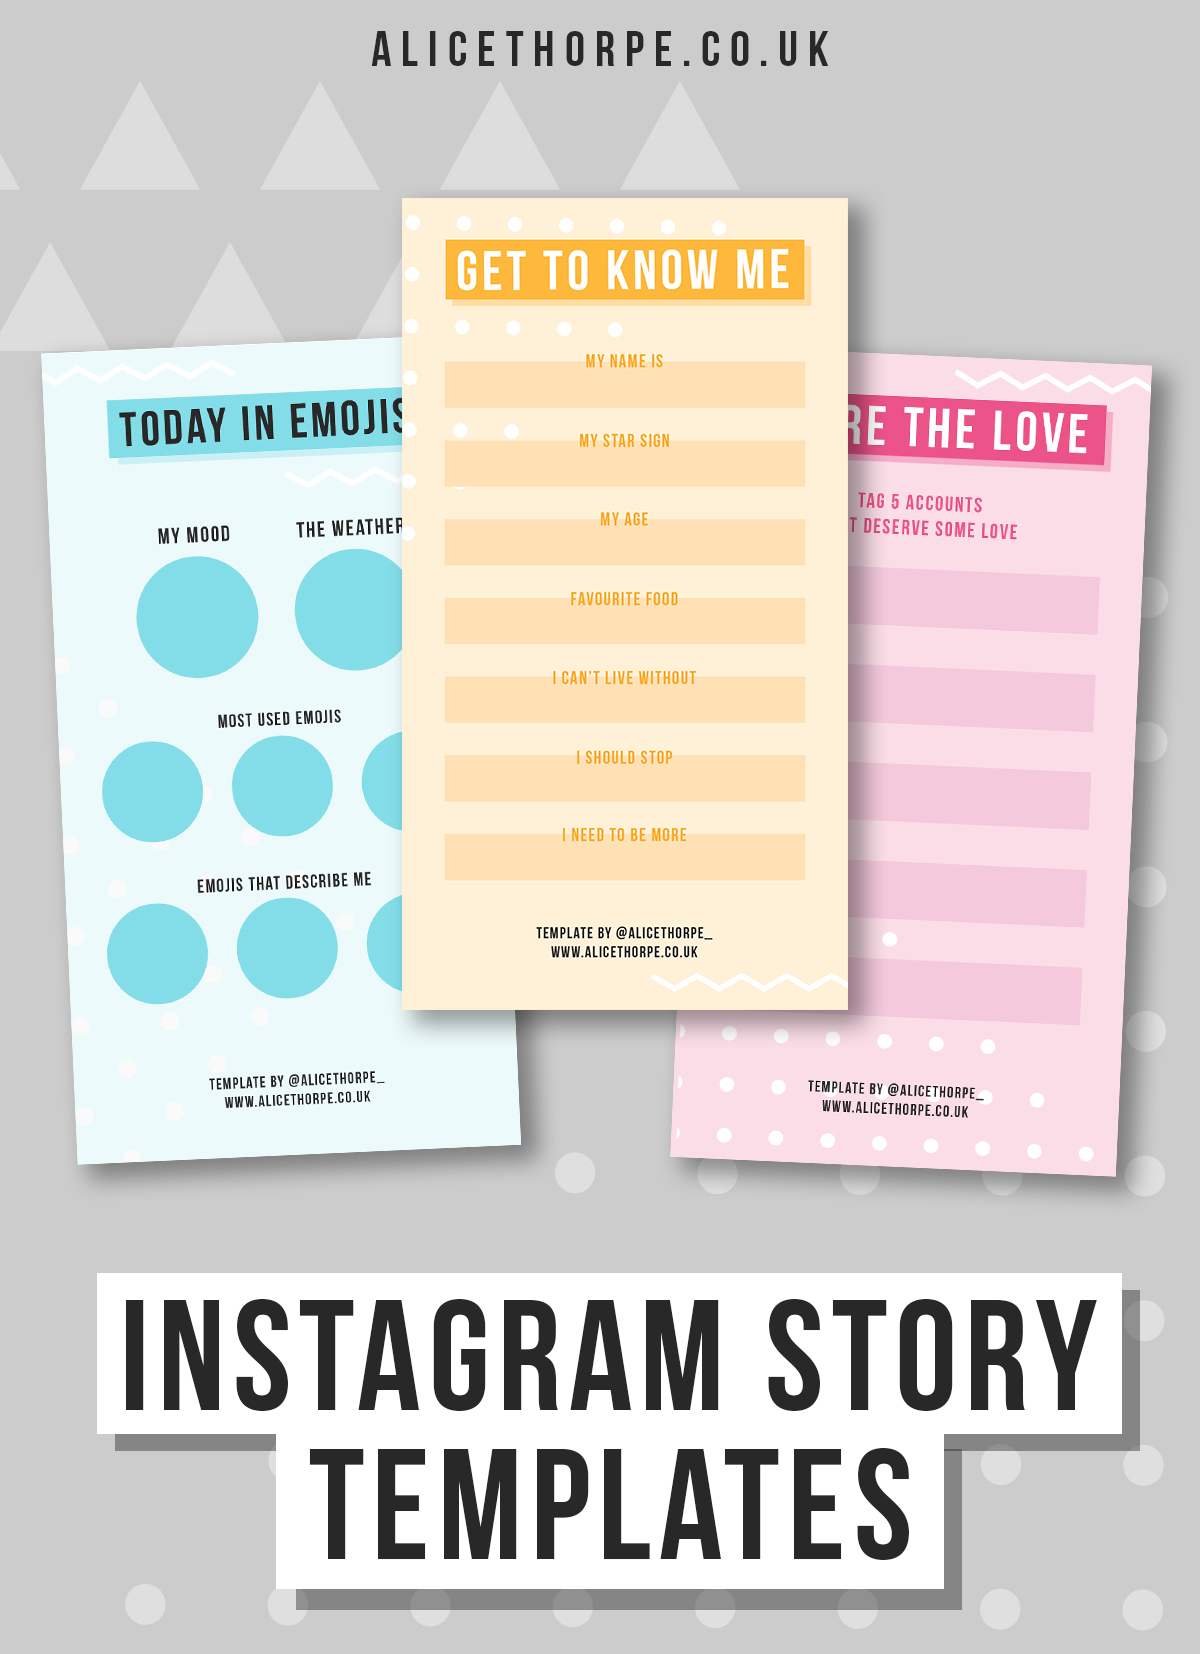 Free Instagram Story Templates. This or that. Favourites. Today in emojis. Me in GIFs.